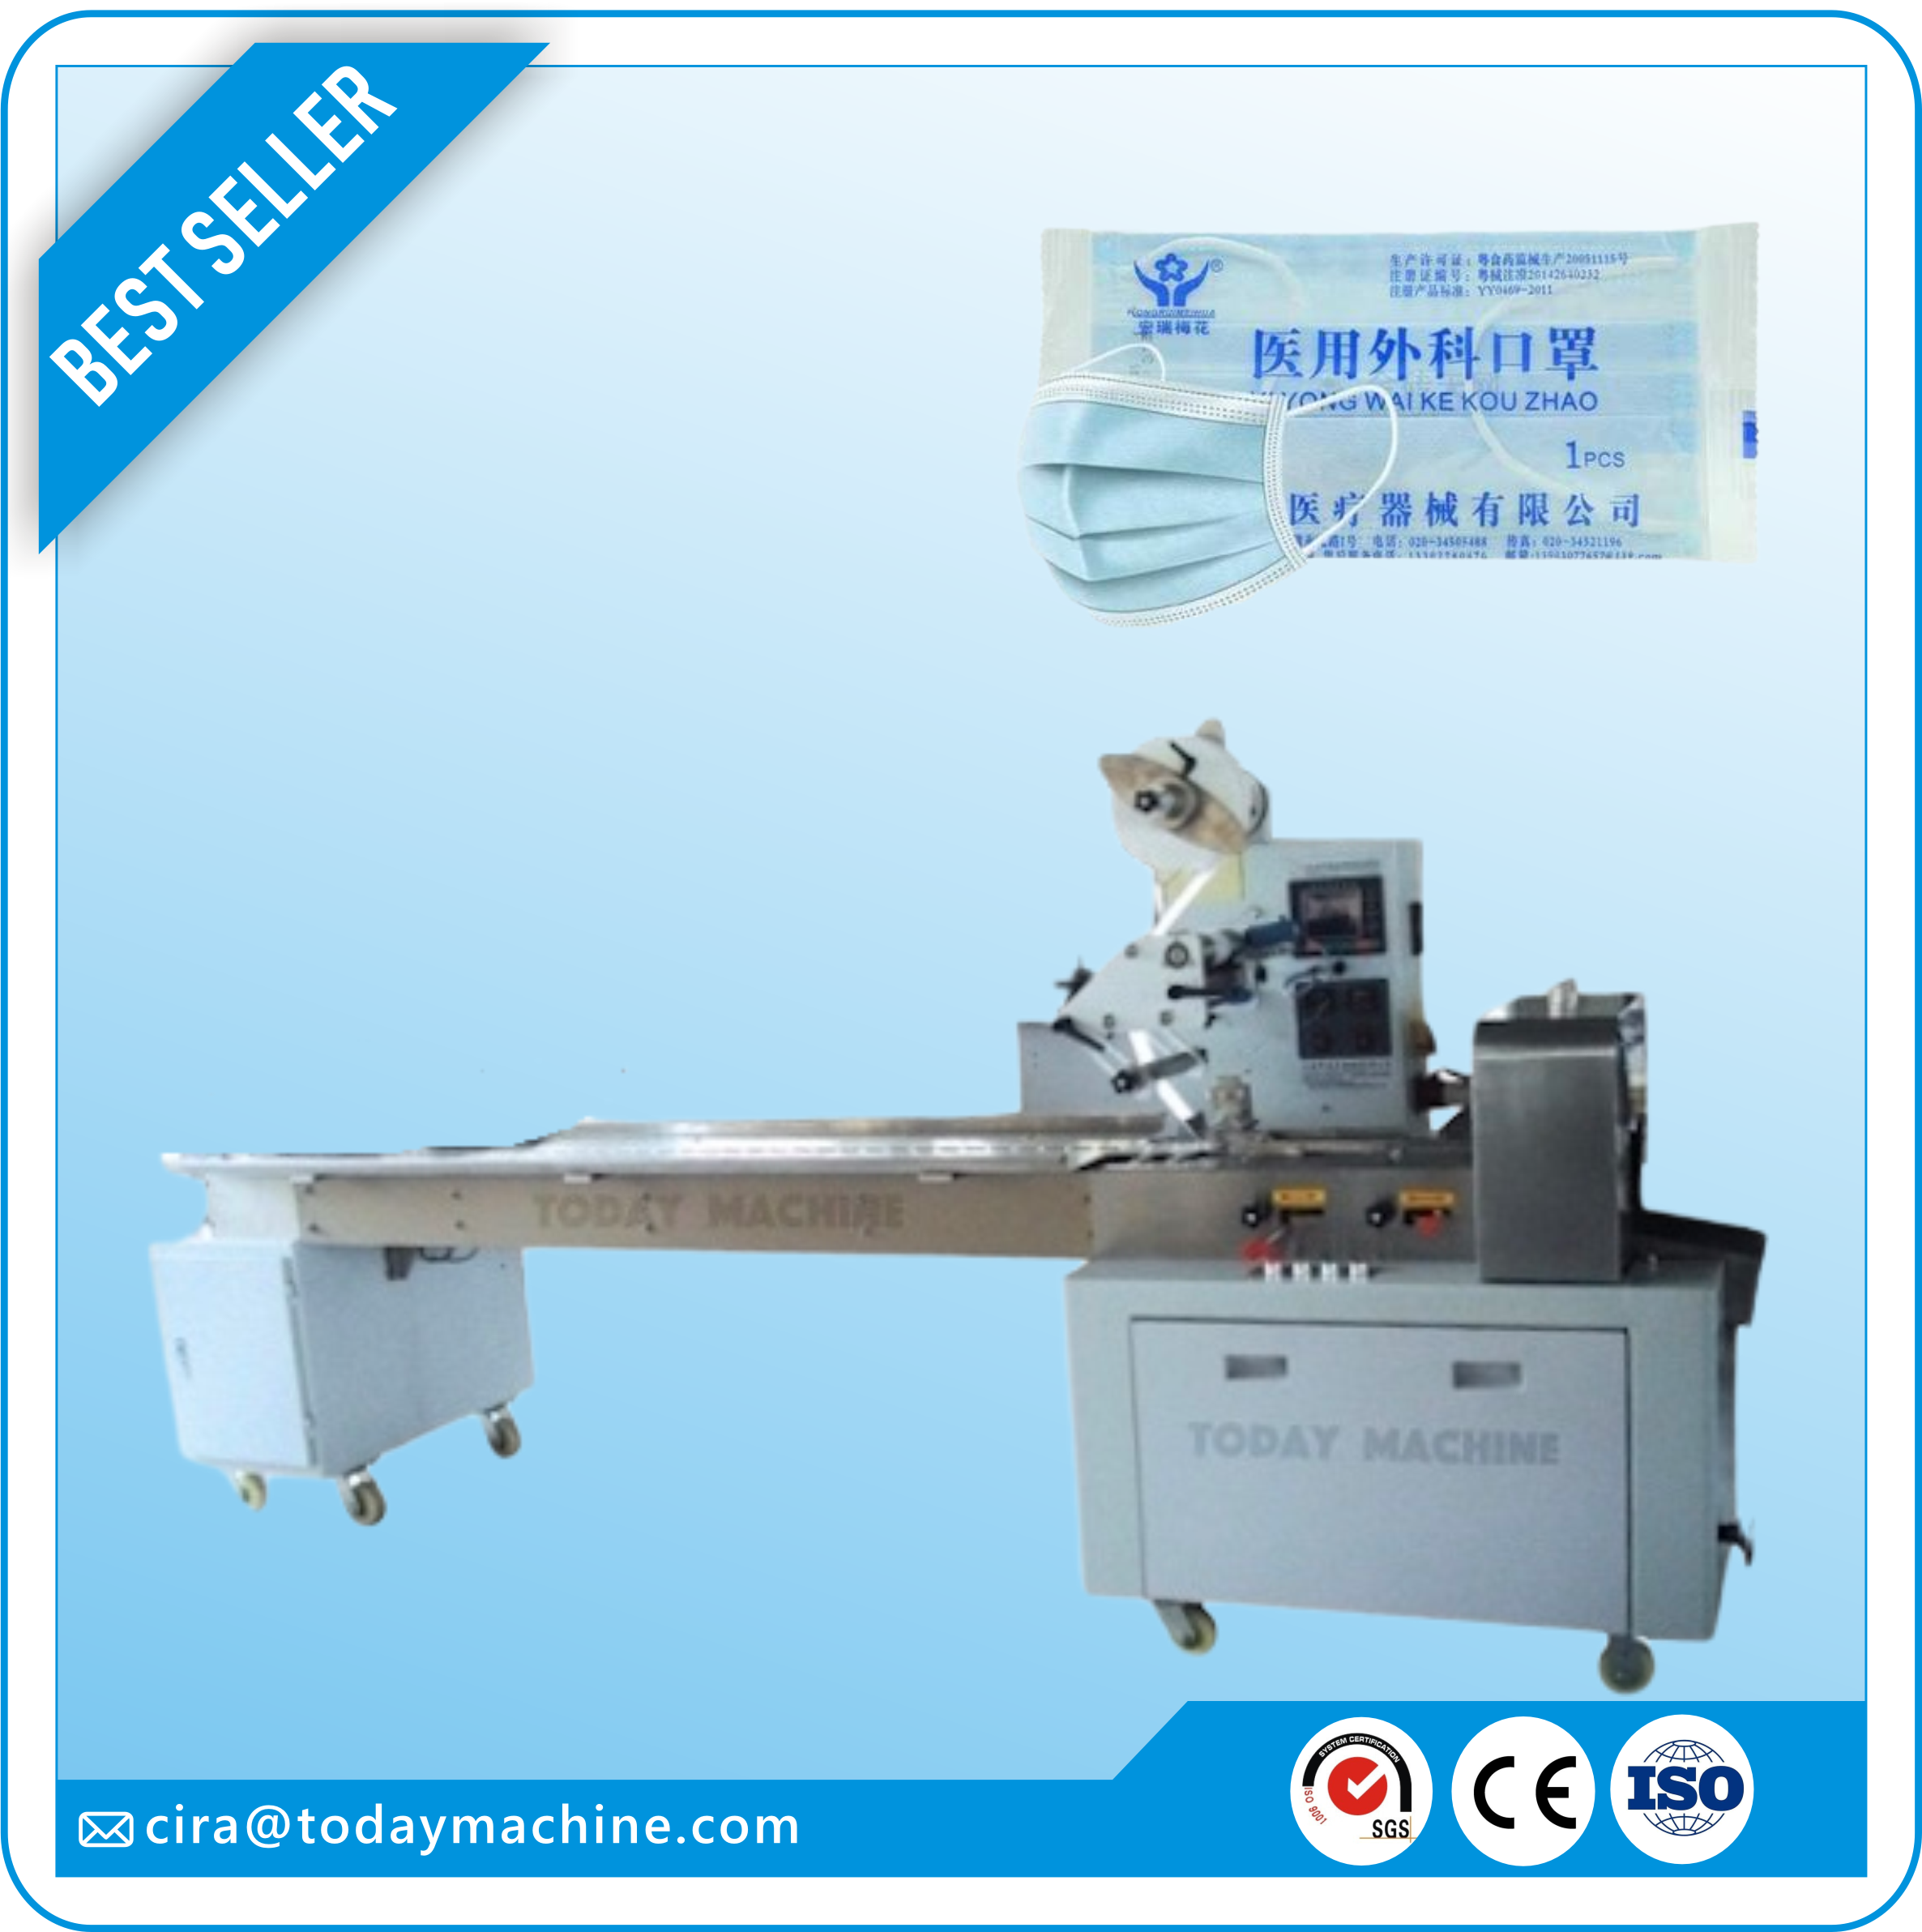 Multifunctional Disposable Medical Face Mask Automatic Pillow Packing Machine Factory Direct Sales